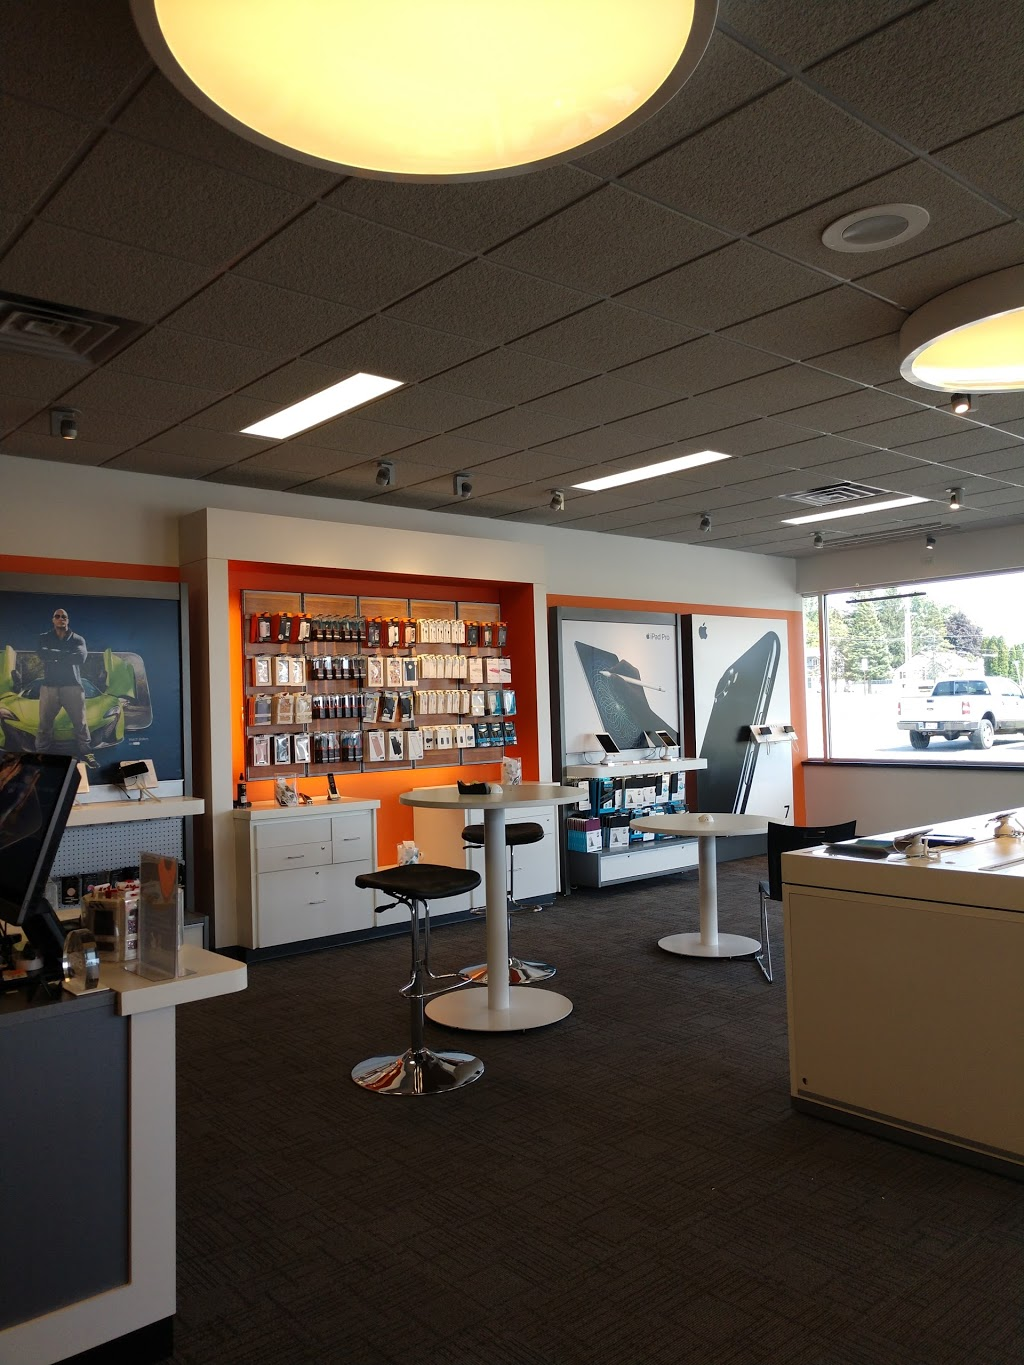 AT&T Store - store  | Photo 1 of 1 | Address: 1614 S Church St, Watertown, WI 53094, USA | Phone: (920) 333-2737